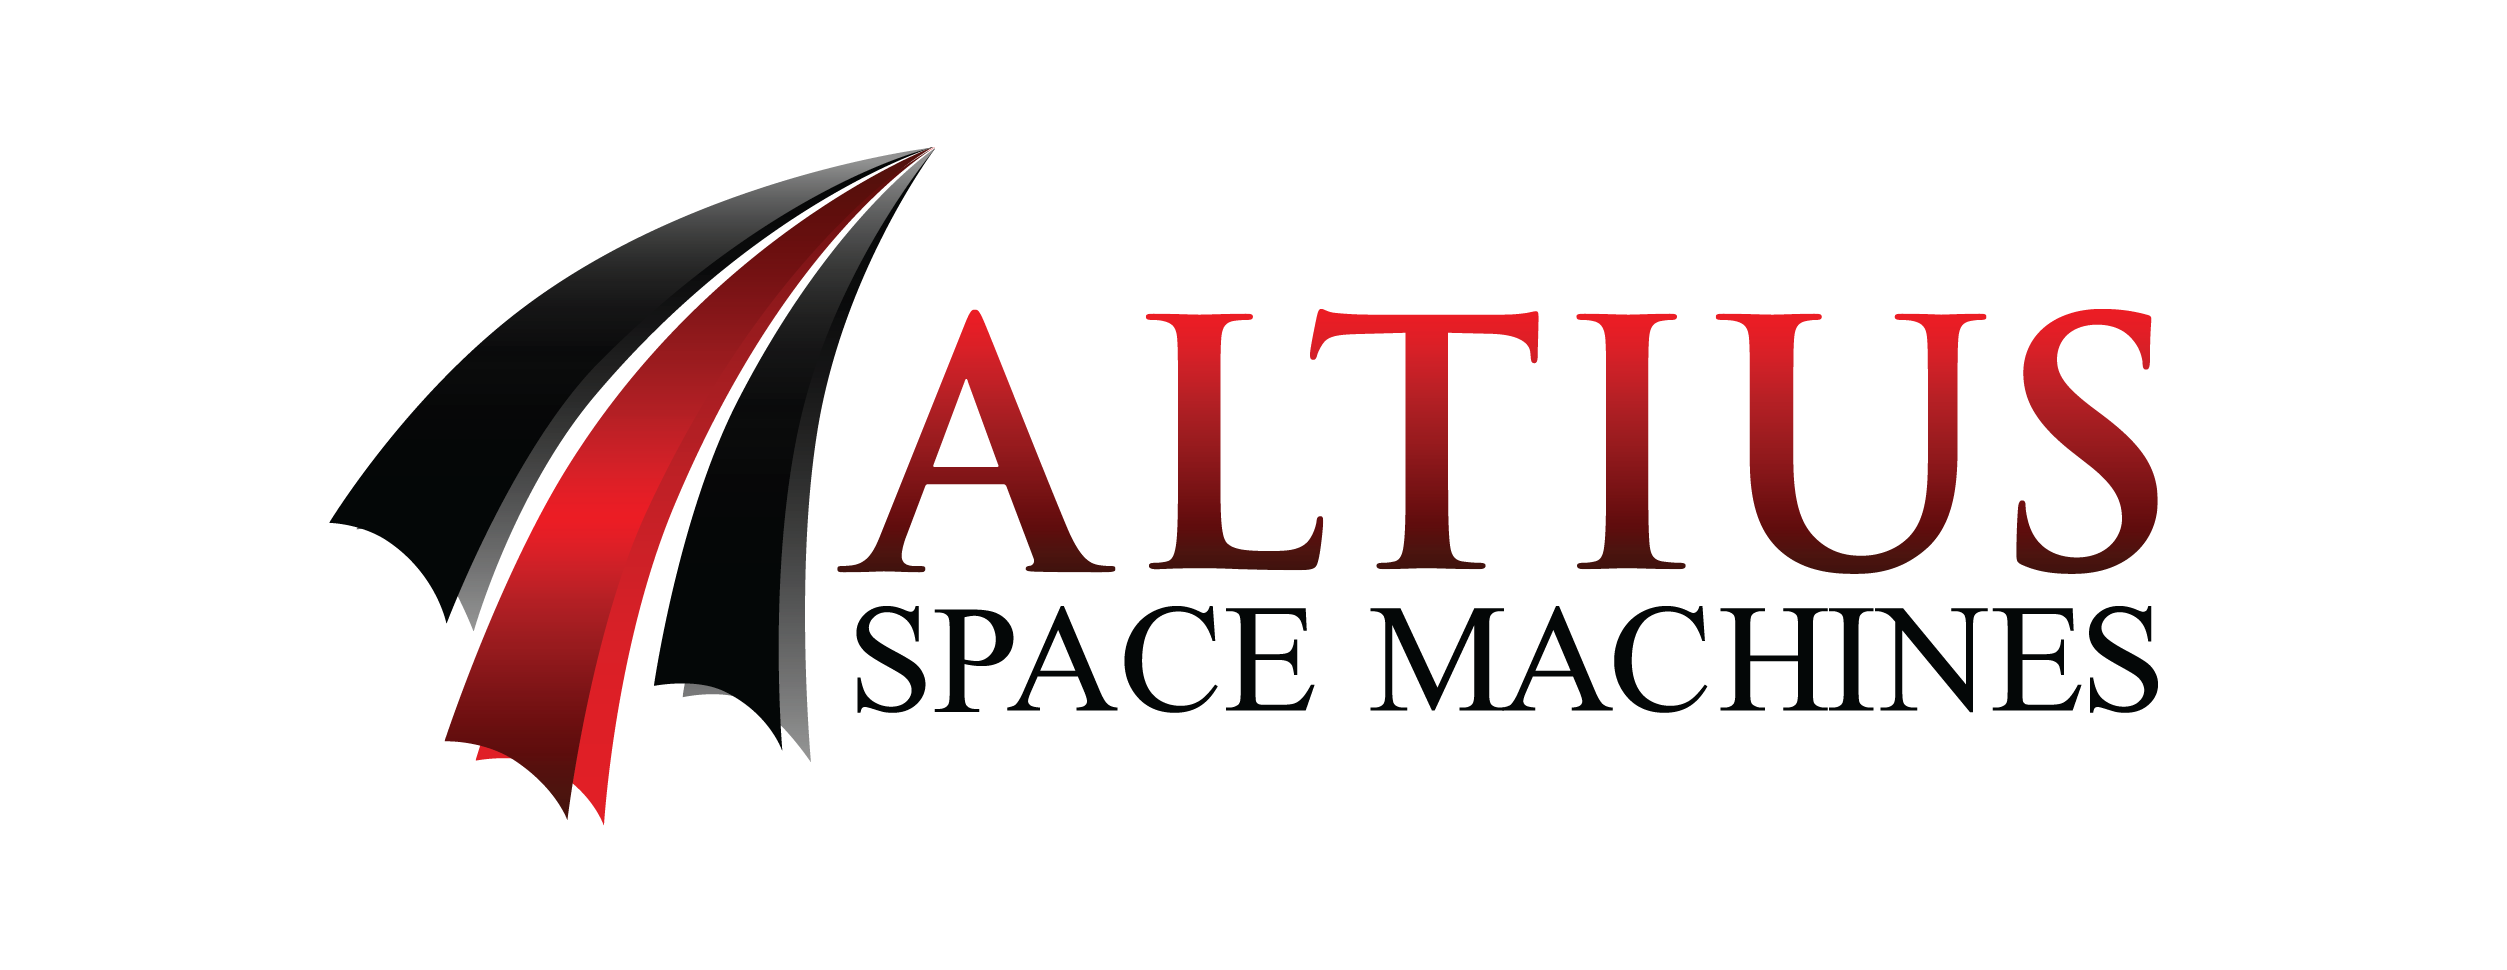 Altius Space Machines Logo